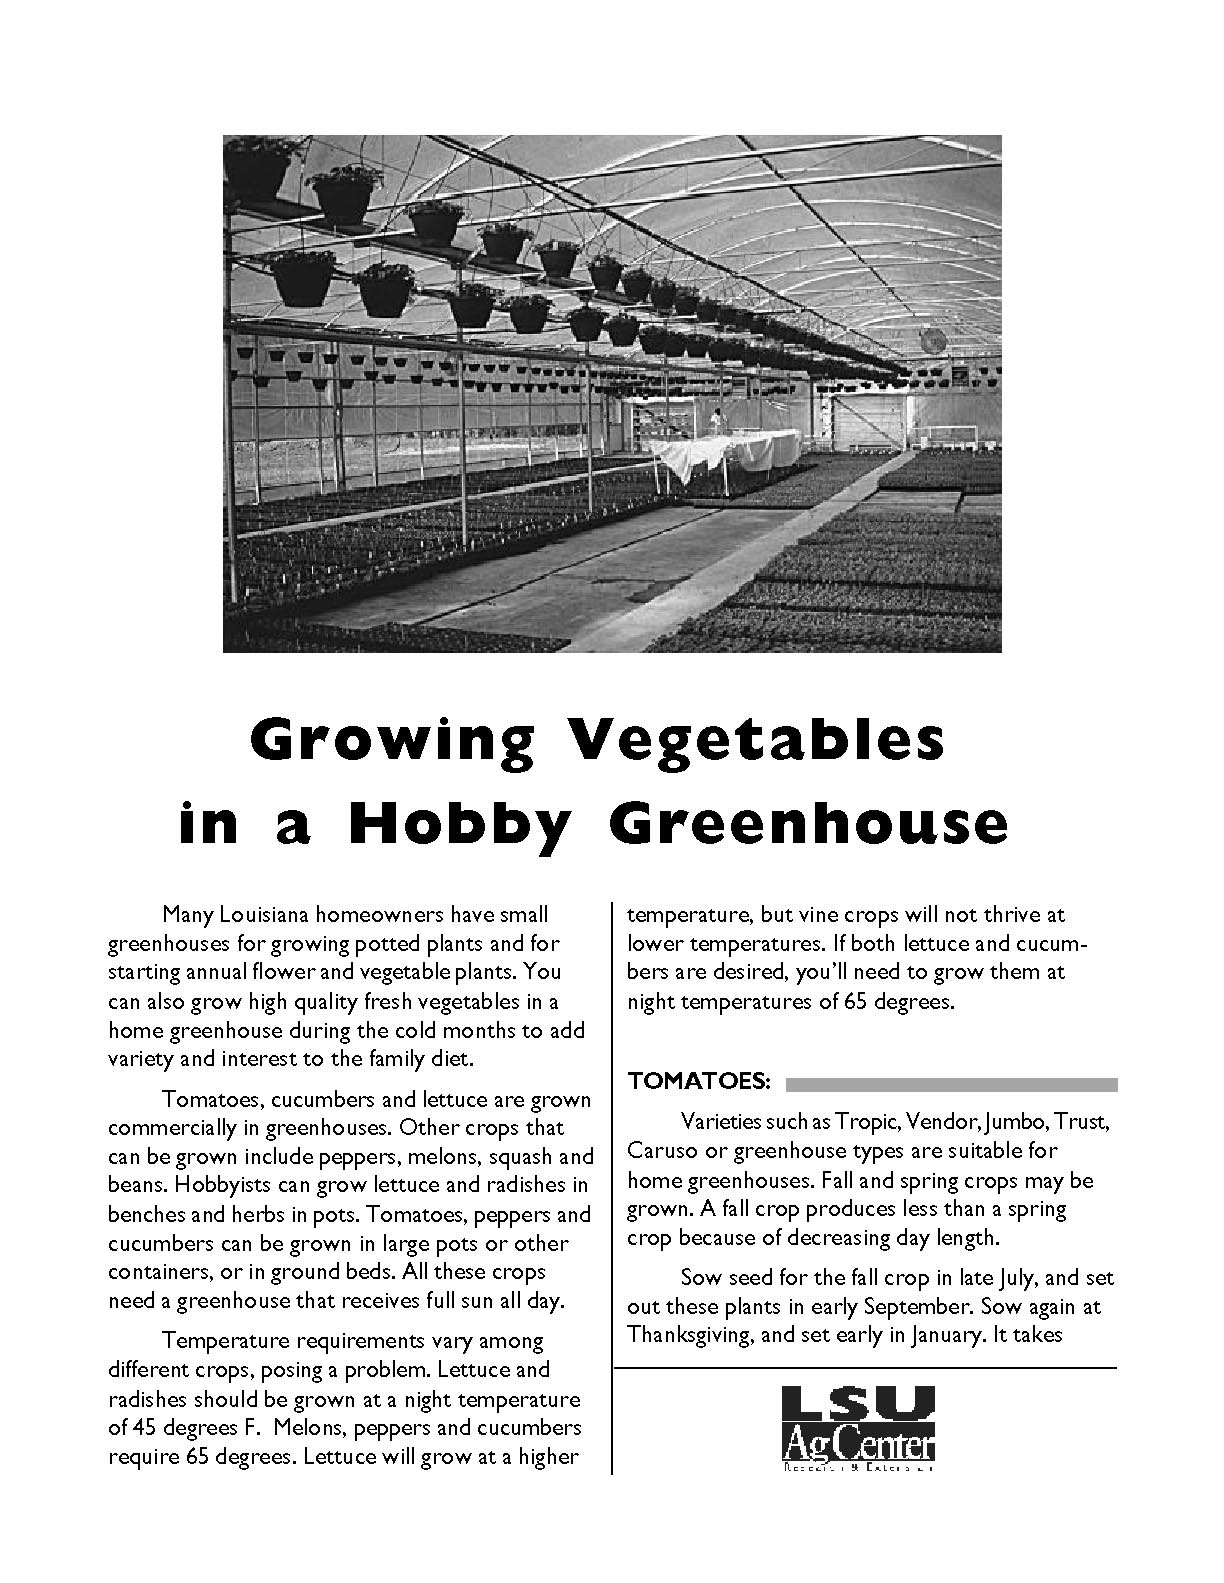 Growing Vegetables in a Hobby Greenhouse